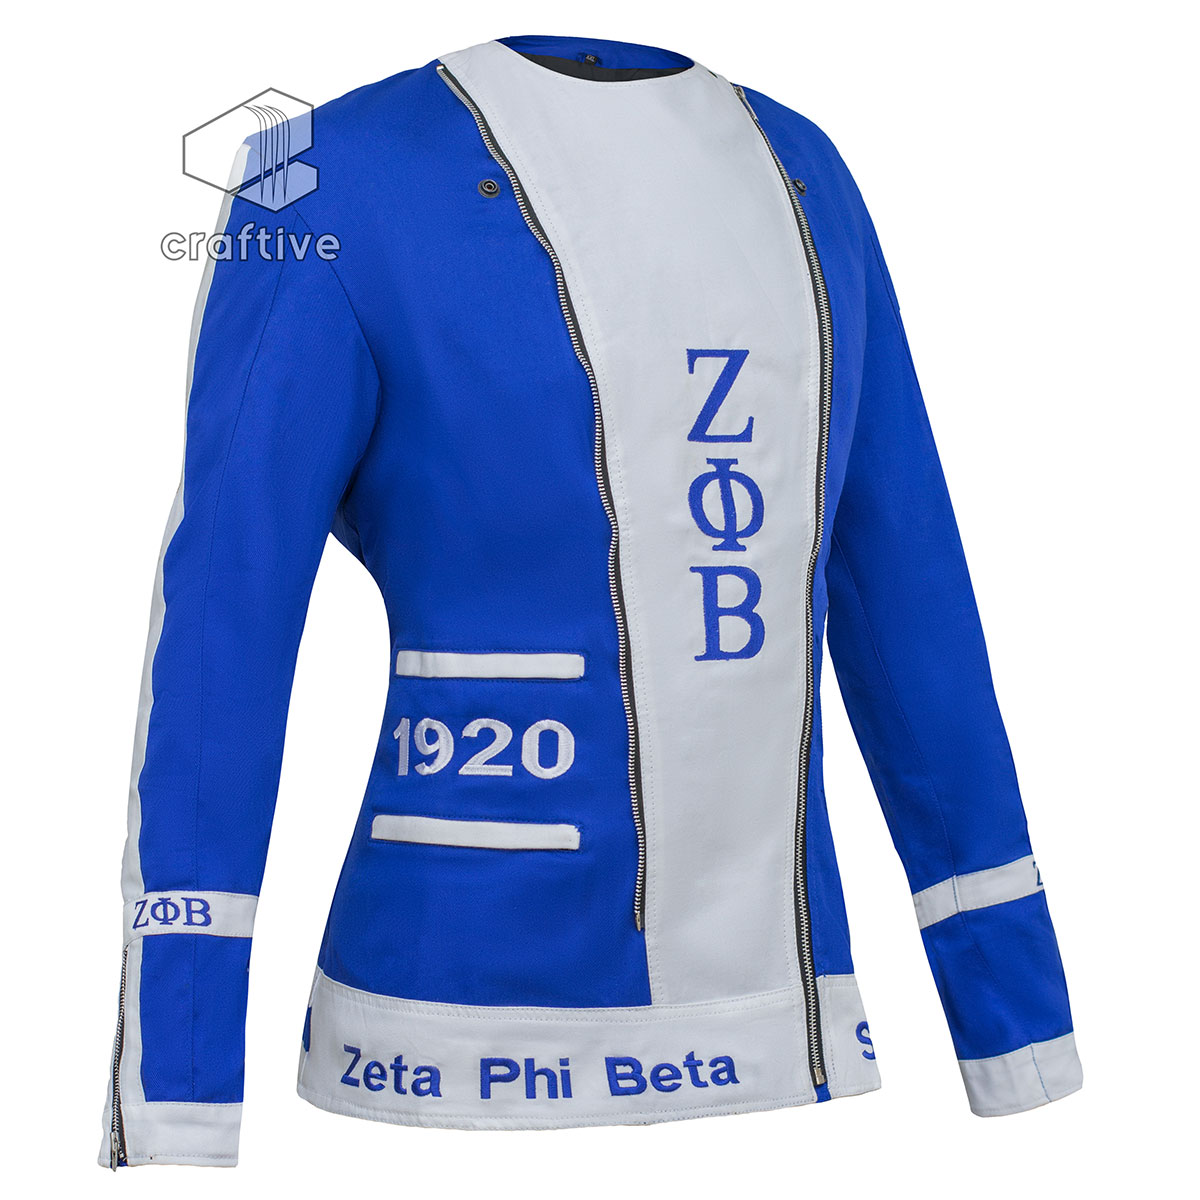 Zeta Phi Beta Crossing Jackets